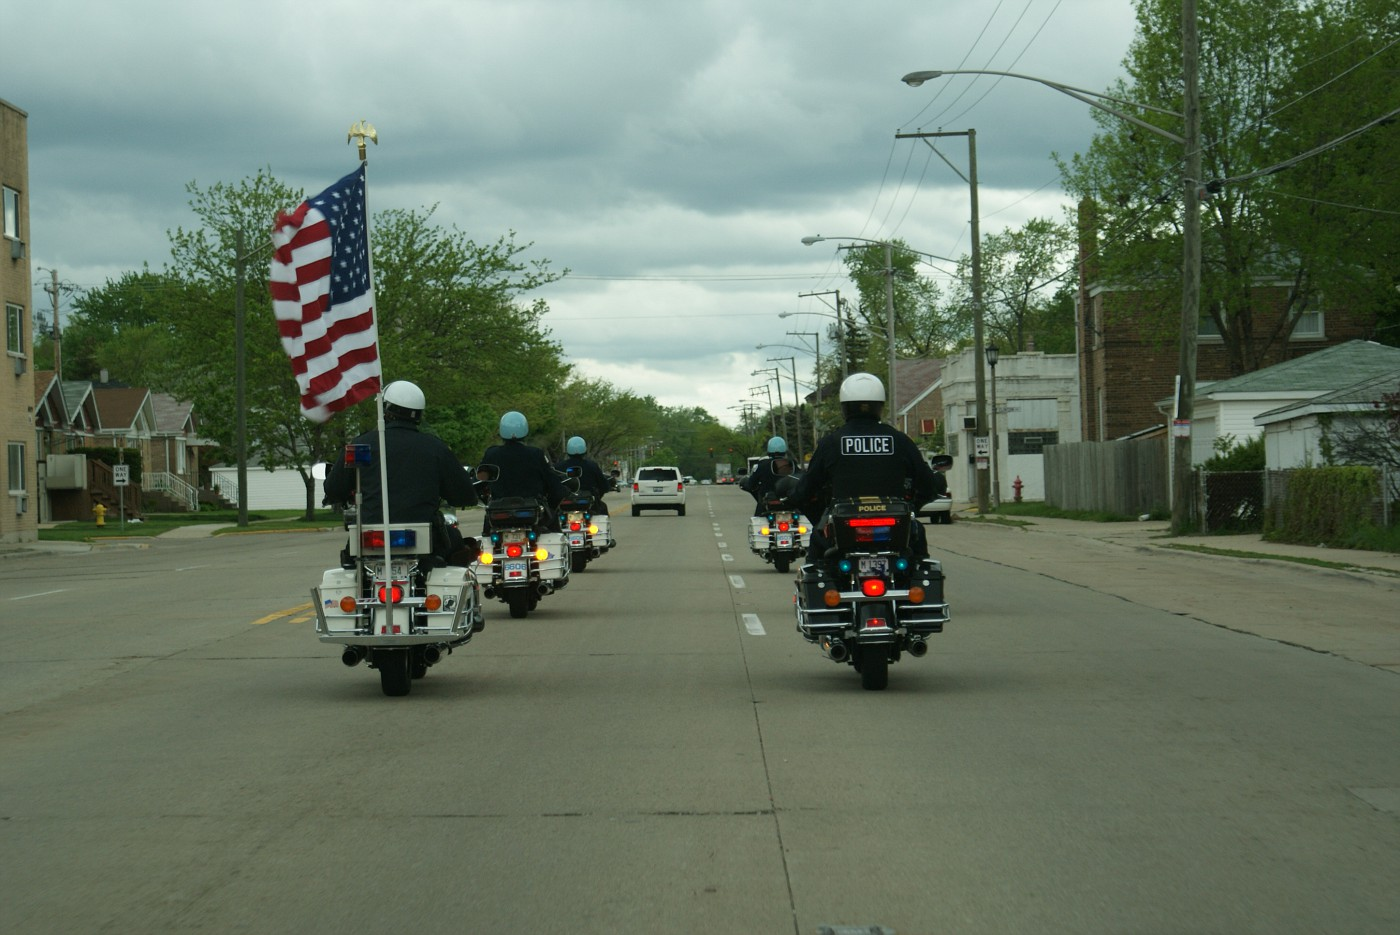 May 9th, Cook County, IL Police Memorial cermony